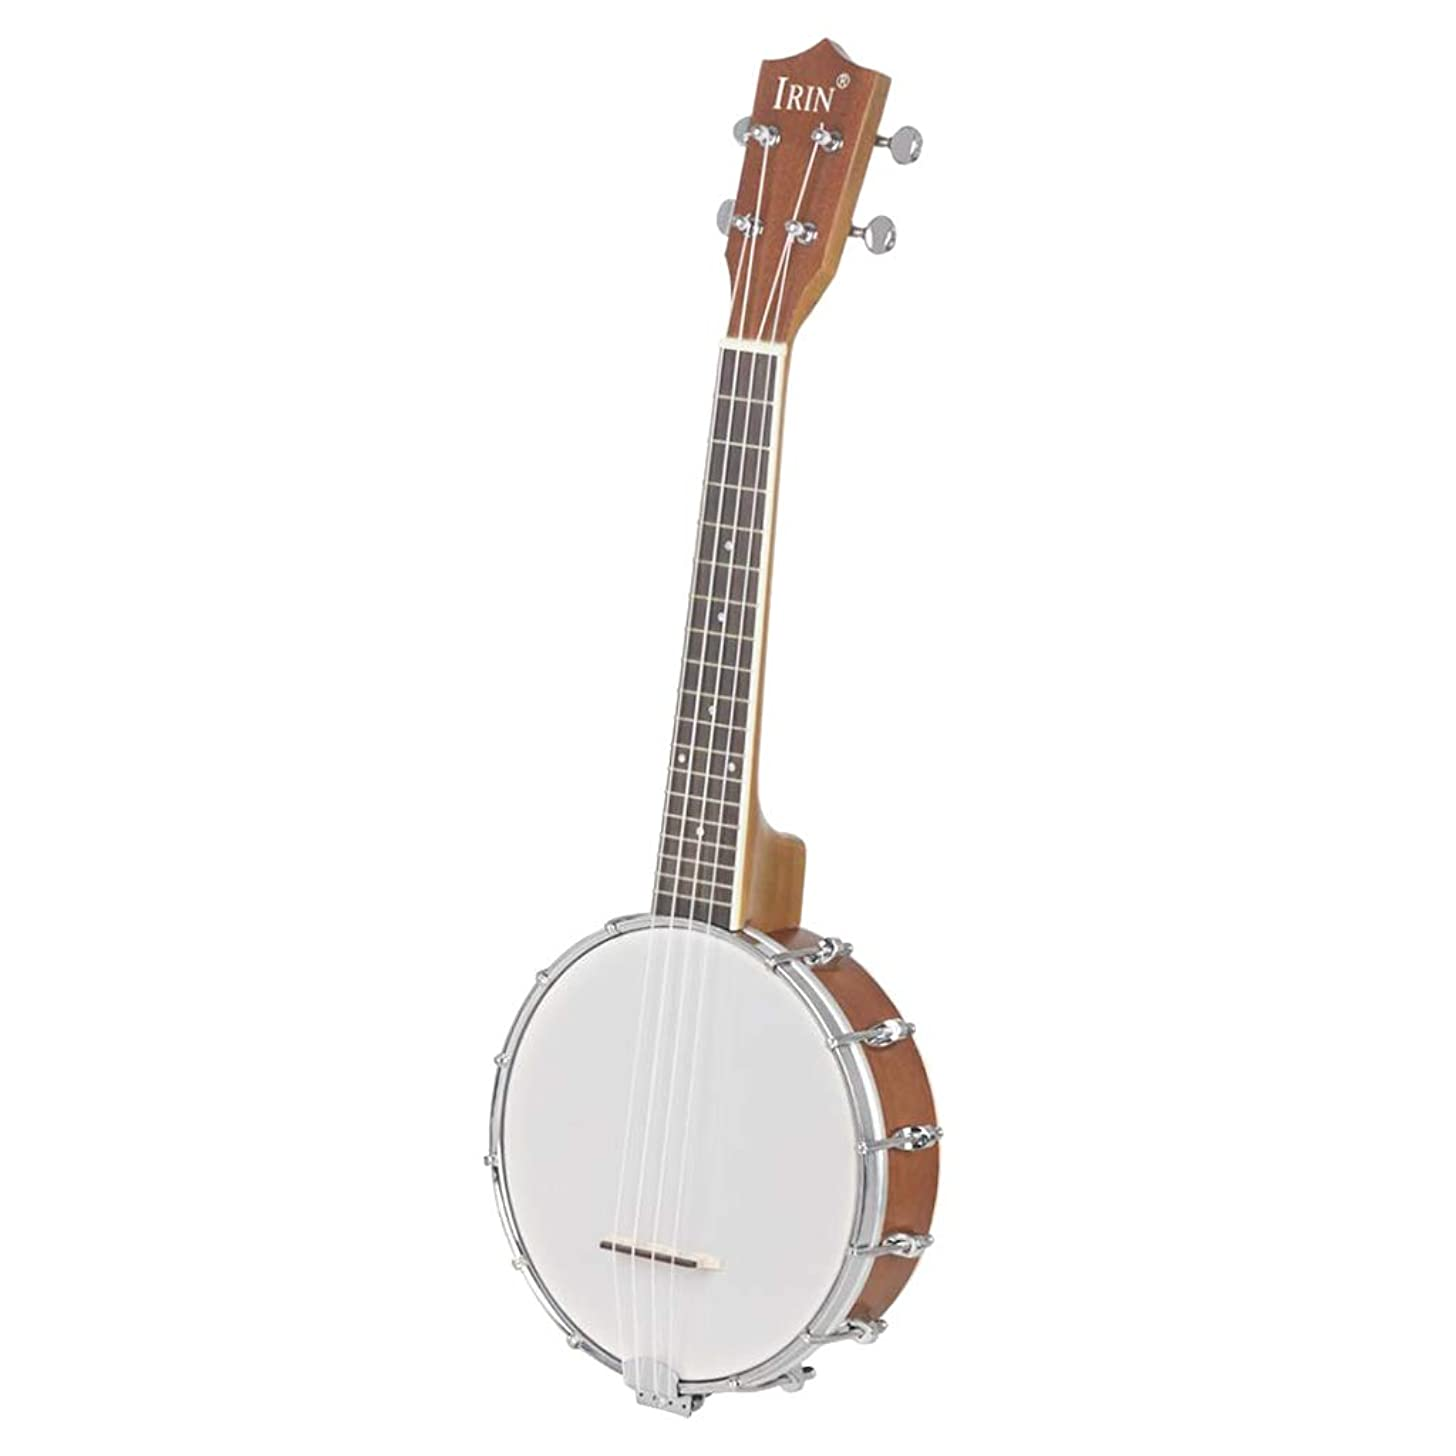 Flameer 4-string Banjo Stringed Instrument with Capo Strings Cleaning Polish Cloth